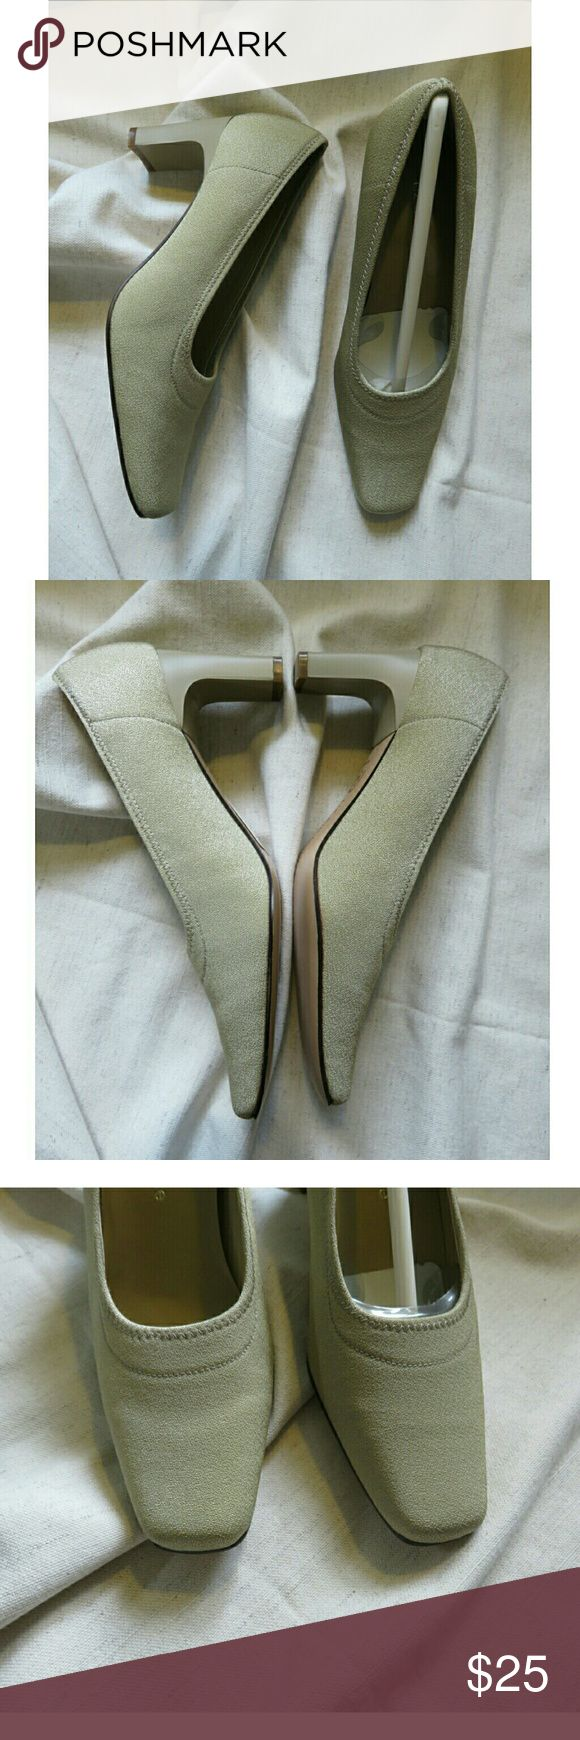 """NWT Vintage Liz Claiborne Gold Pumps 6.5 Wedding +New with boutique tags and never worn from Liz Claiborne (still has shaper paper in left shoe). Classic vintage gold/ivory pumps, feel like a metallic fabric but says leather. Ladies shoe size 6.5, heel is 2.5"""" high, mini scuff on right heel (pictured). Perfect from a unique vintage wedding shoe to work everyday!  So classic and chic! +Your purchase helps support local & national charities, and I'm a veteran reseller, fashion consultant, and…"""